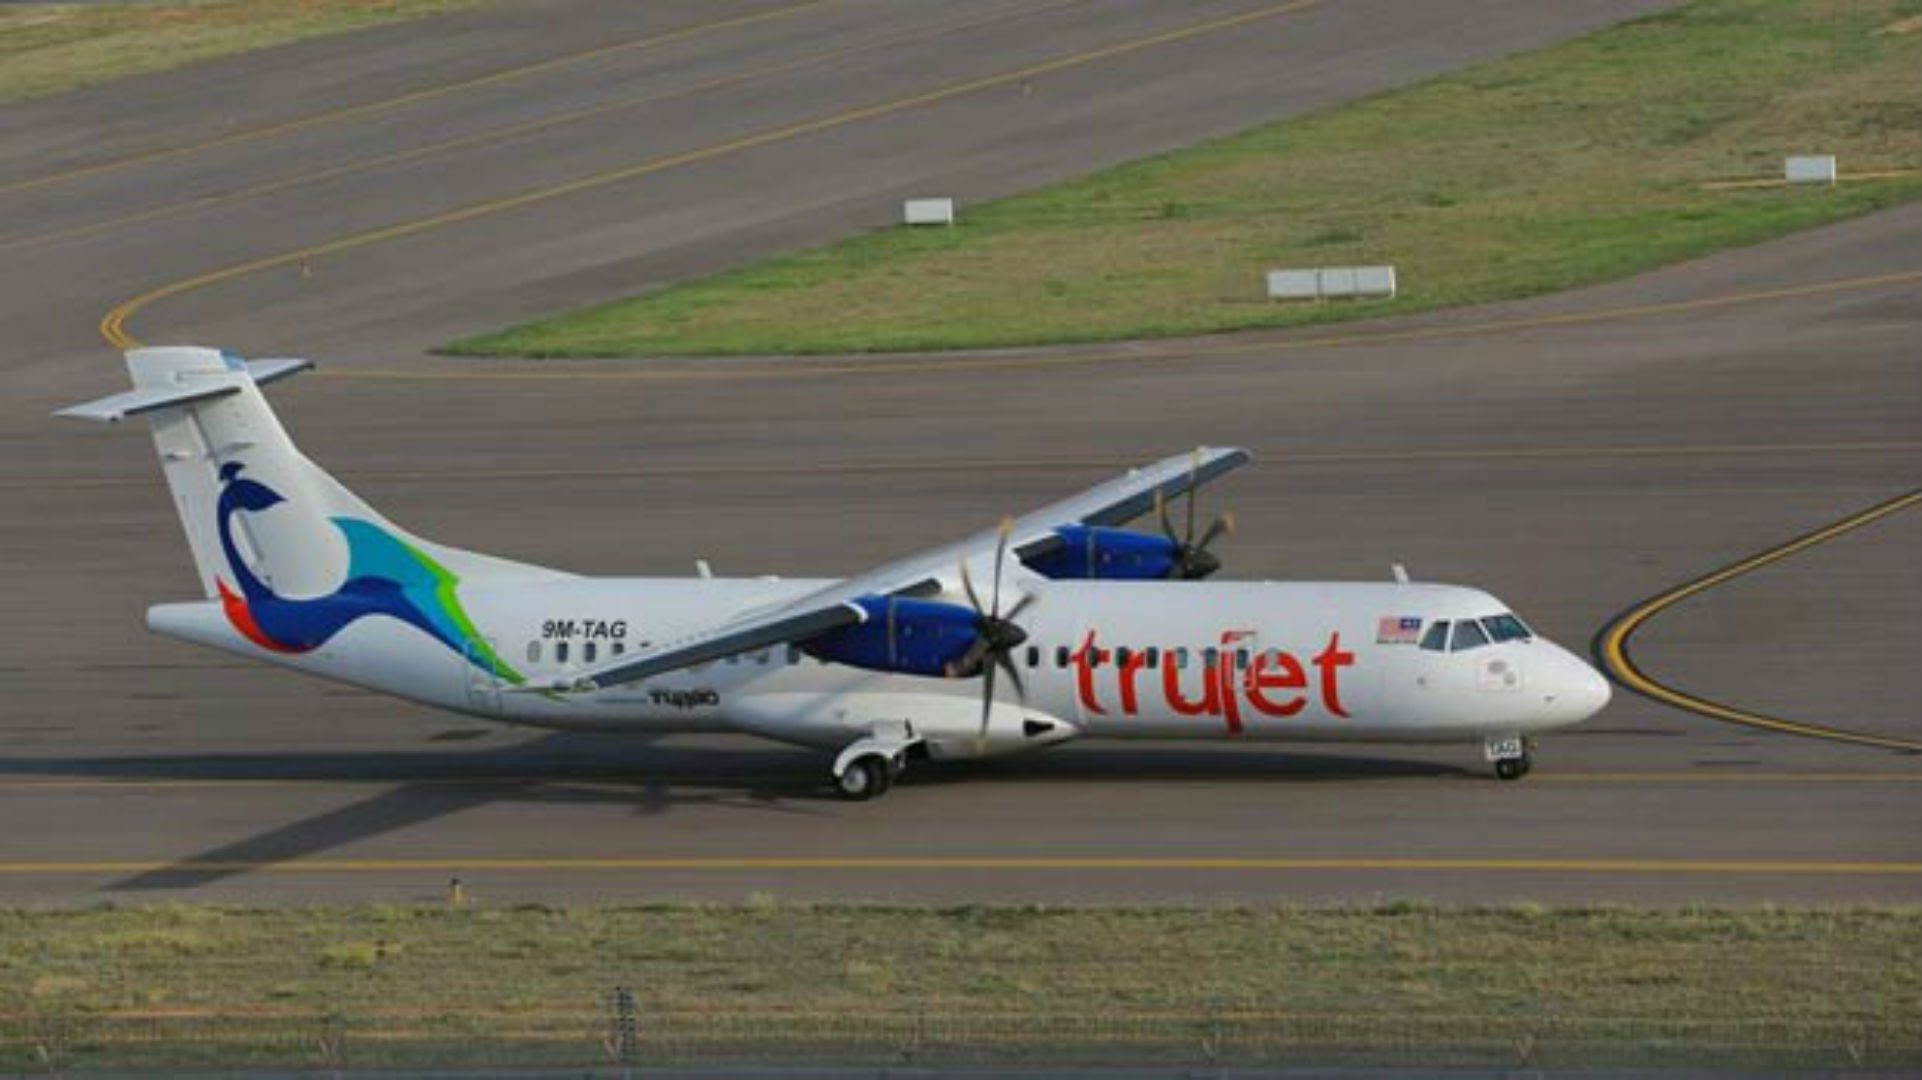 TRUJET Photos Images And Wallpapers